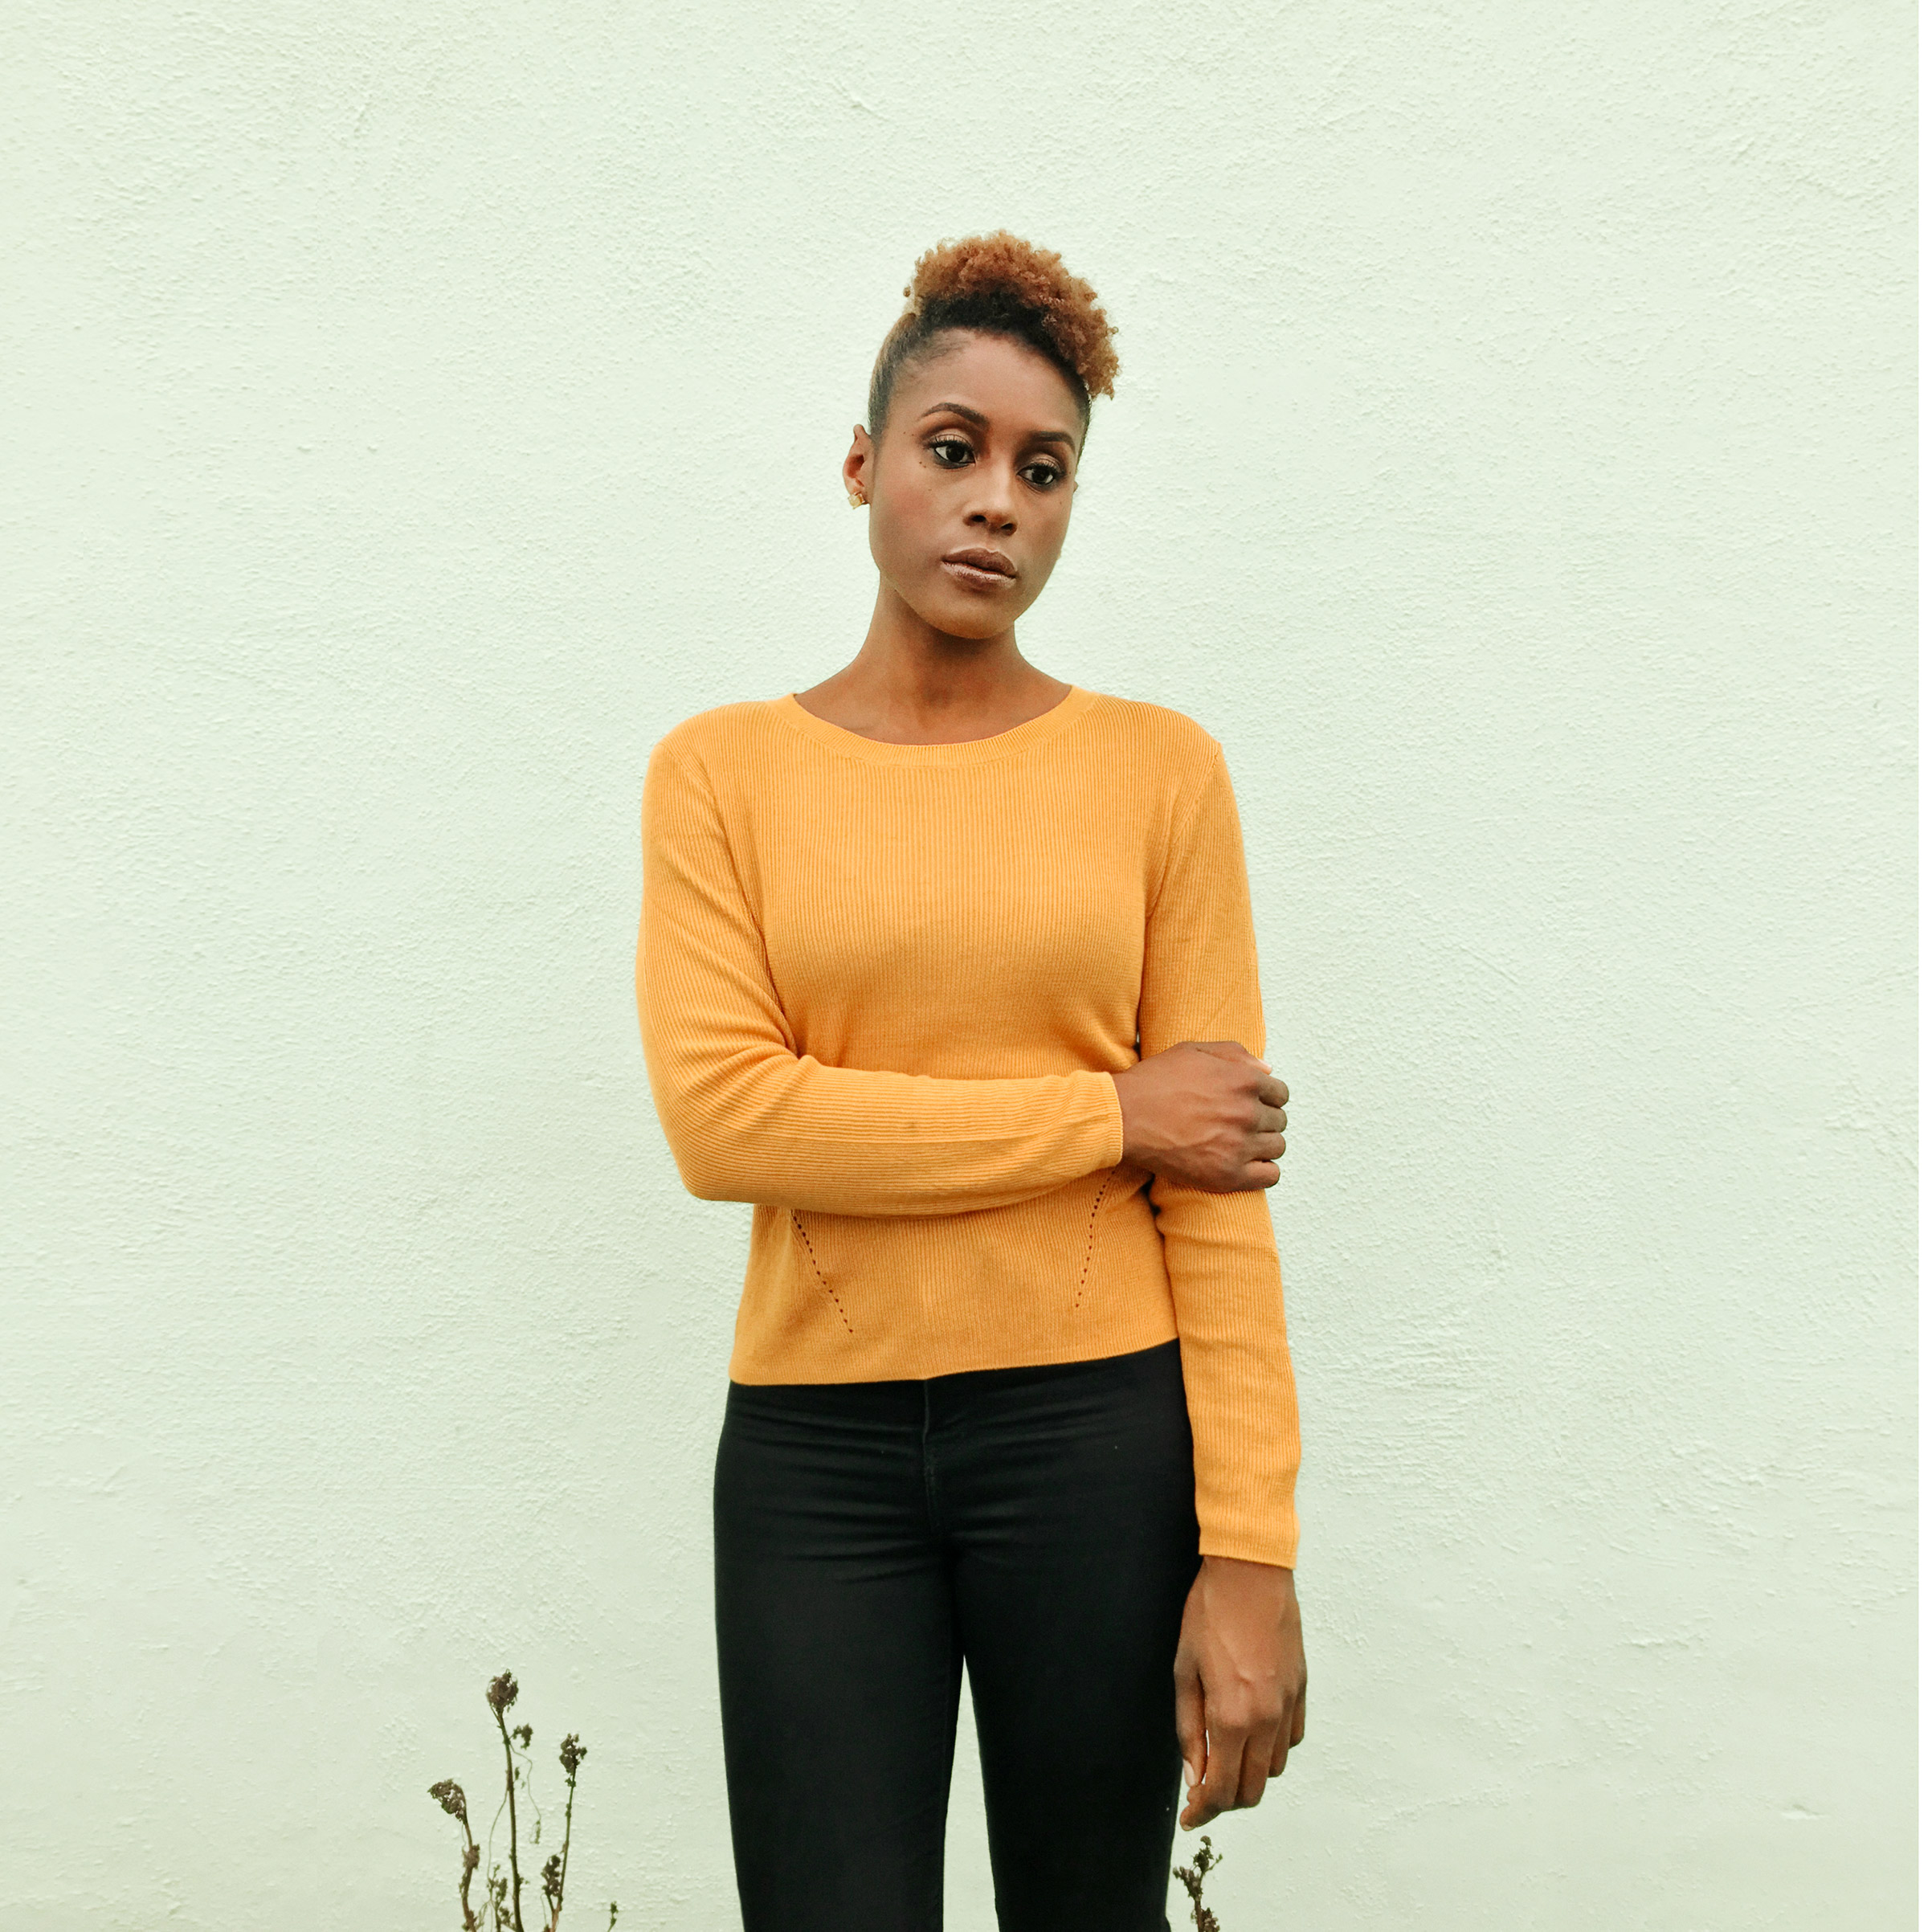 Portrait of Issa Rae, photographed in Culver City, Los Angeles, October 29, 2016.